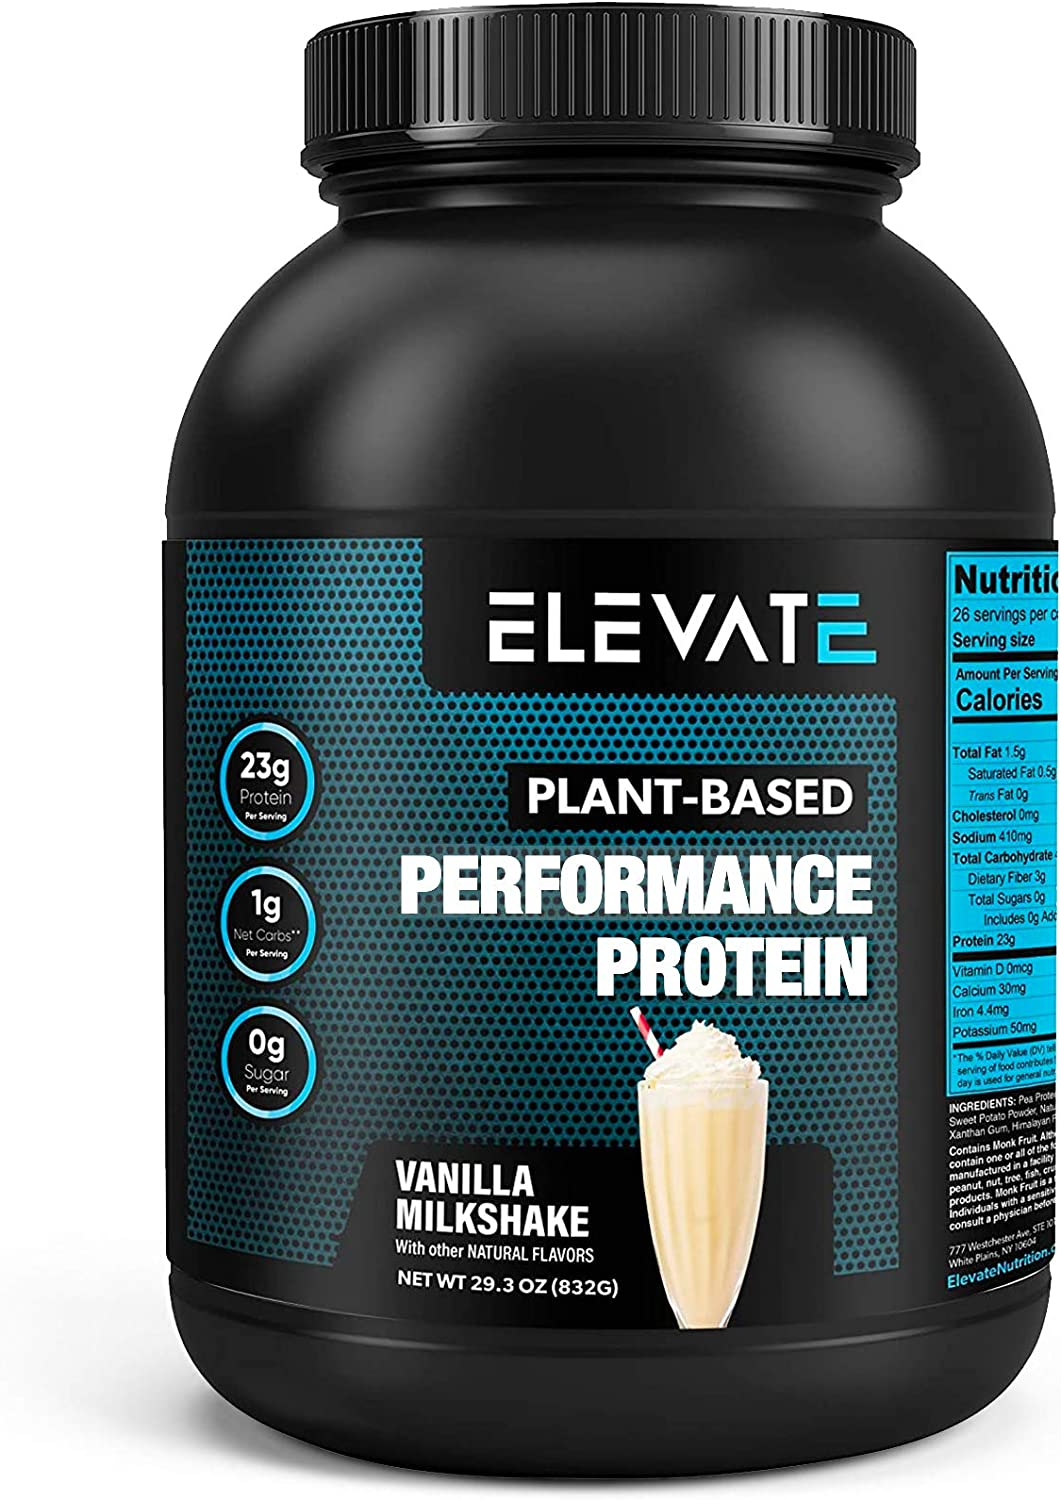 Plant Based Vegan Protein Powder with High BCAAs and Glutamine, Low Carb Protein Powder Vanilla Milkshake, Non GMO, NO Sugar, Dairy and Soy Free (26 Servings) - Elevate Nutrition: Health & Personal Care